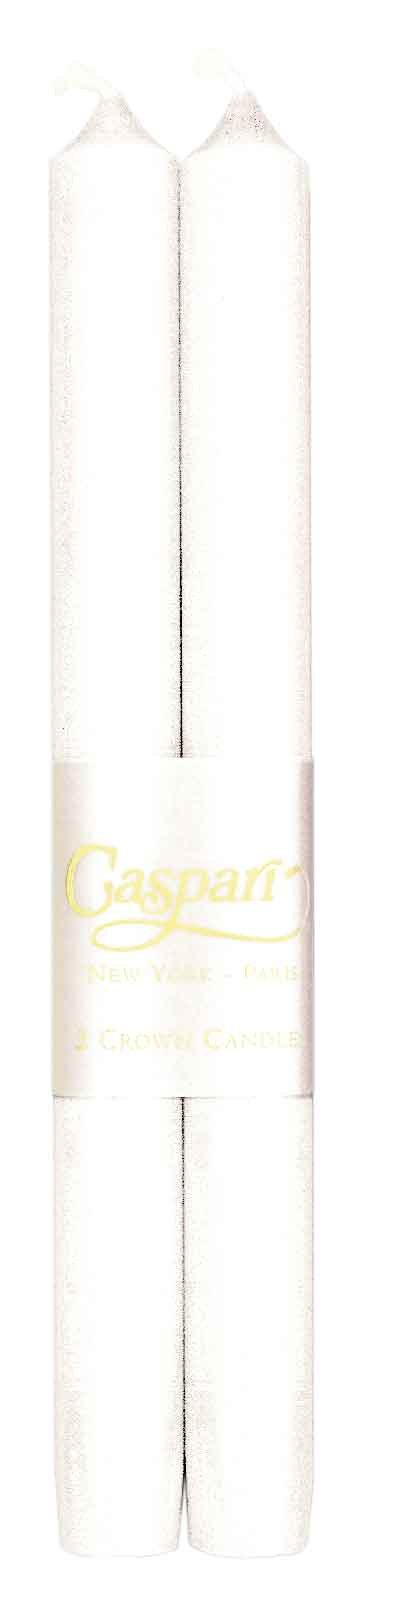 Caspari - Fancy 10-Inch Taper, Dripless, Smokeless, Candlesticks, White, Set of 12